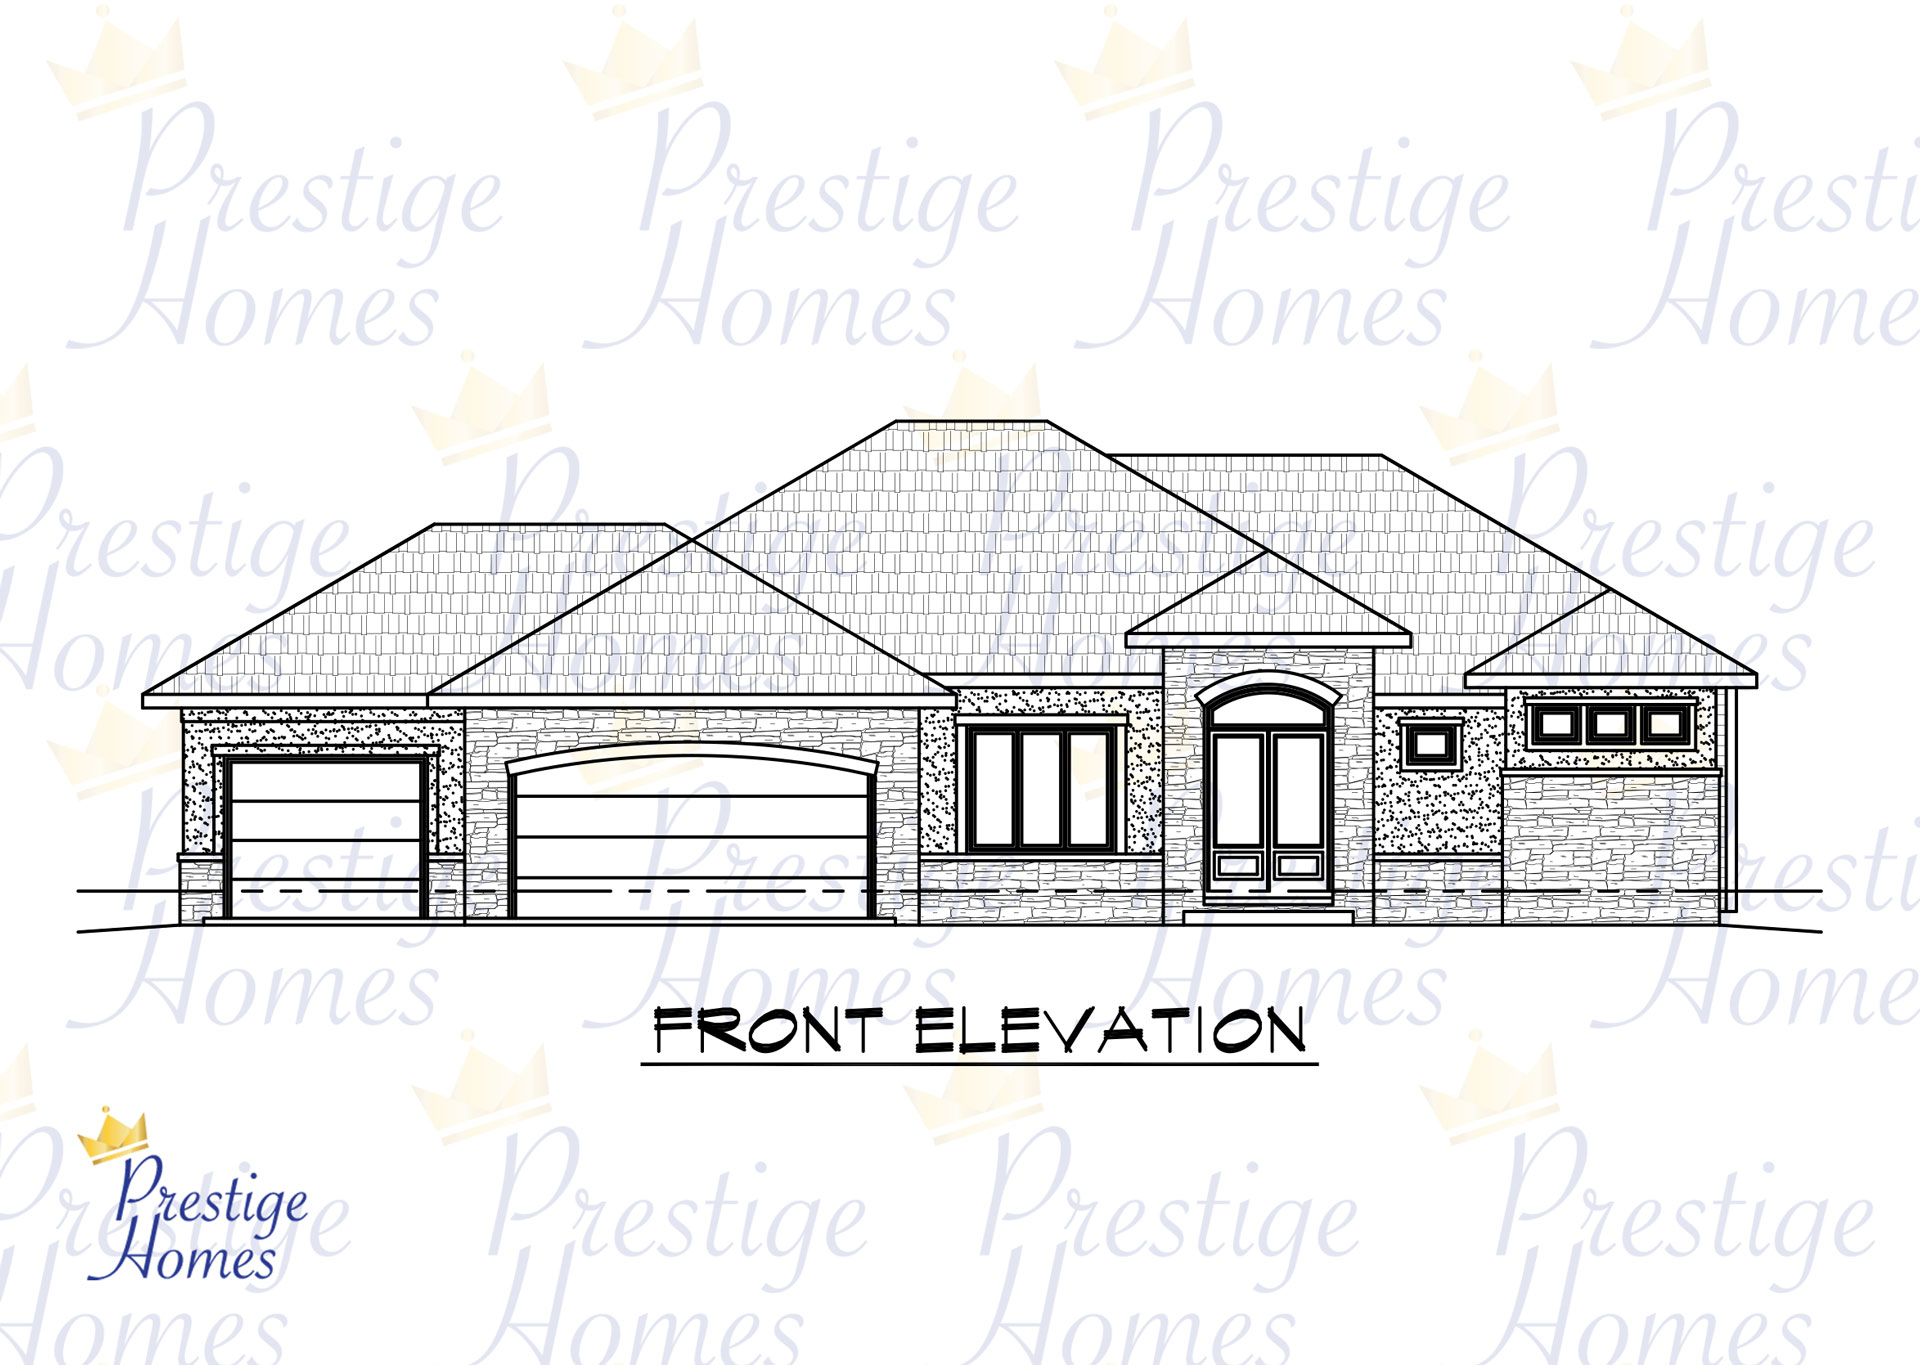 Prestige Homes - Floor Plan - Bella 3 Bedroom Front